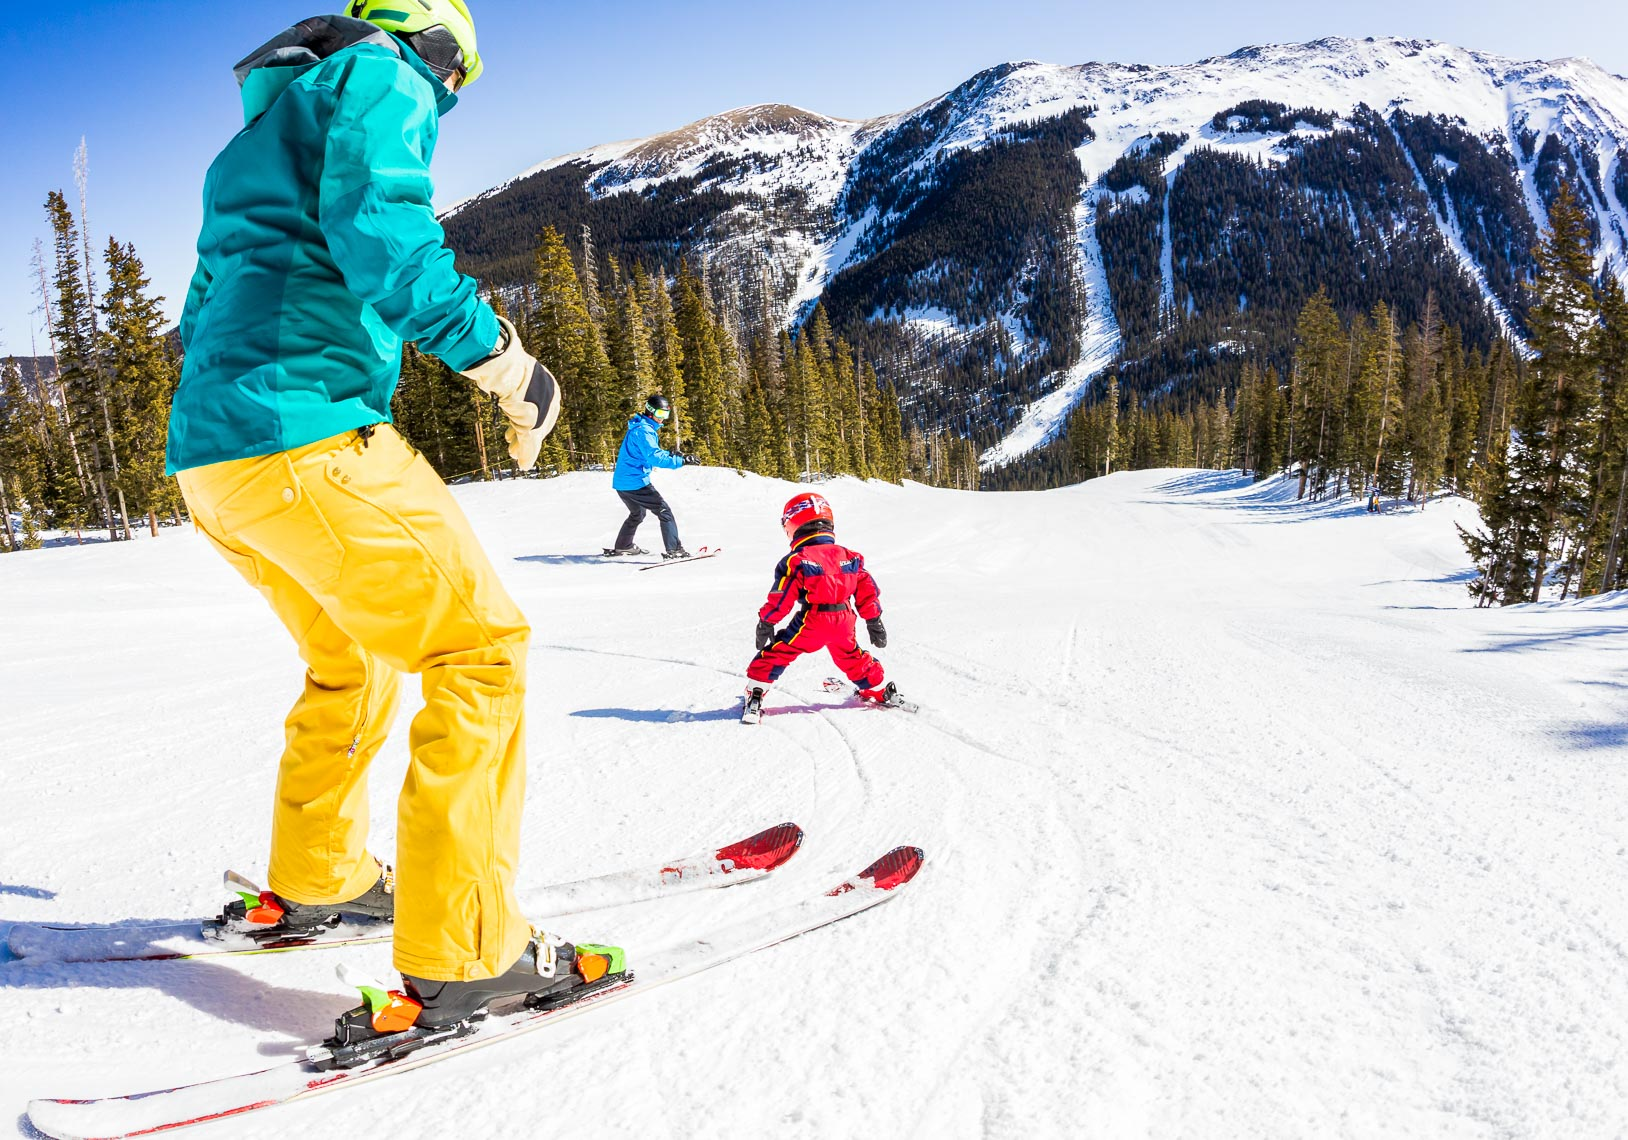 Family Ski Groom Run in New Mexico | Michael DeYoung